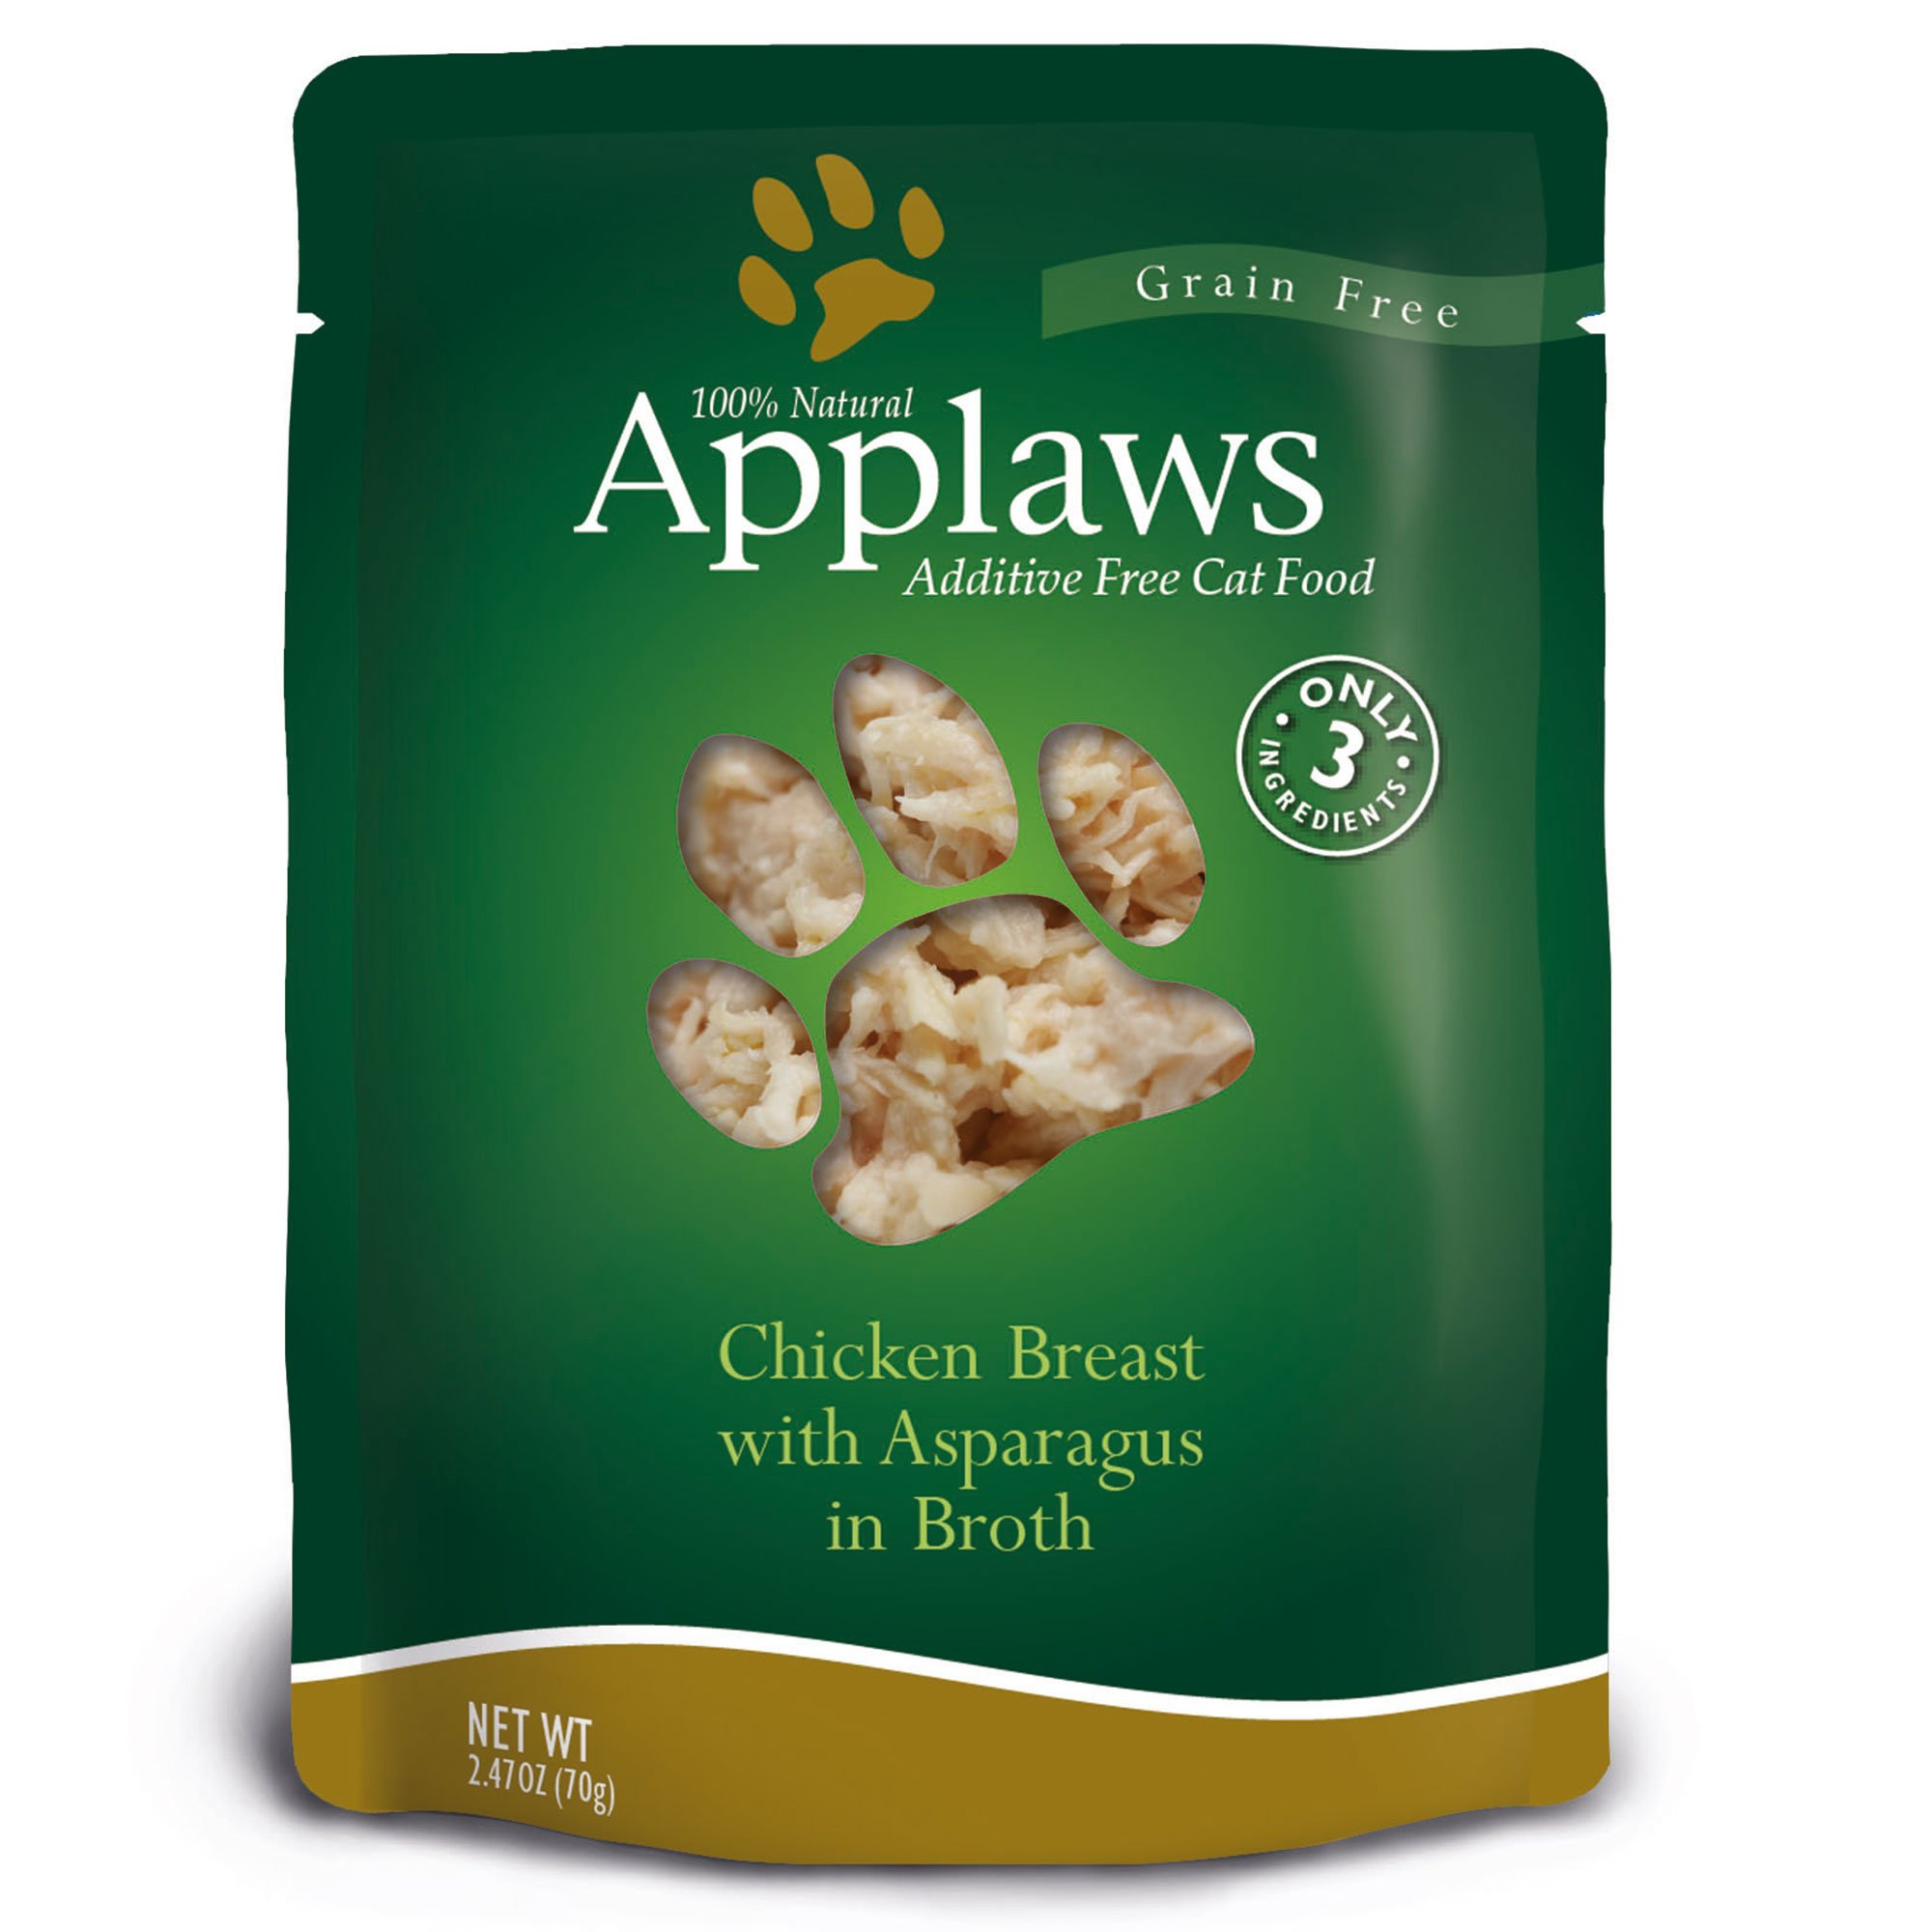 Applaws Chicken Breast with Asparagus in Broth Pouch Grain Free Cat Food